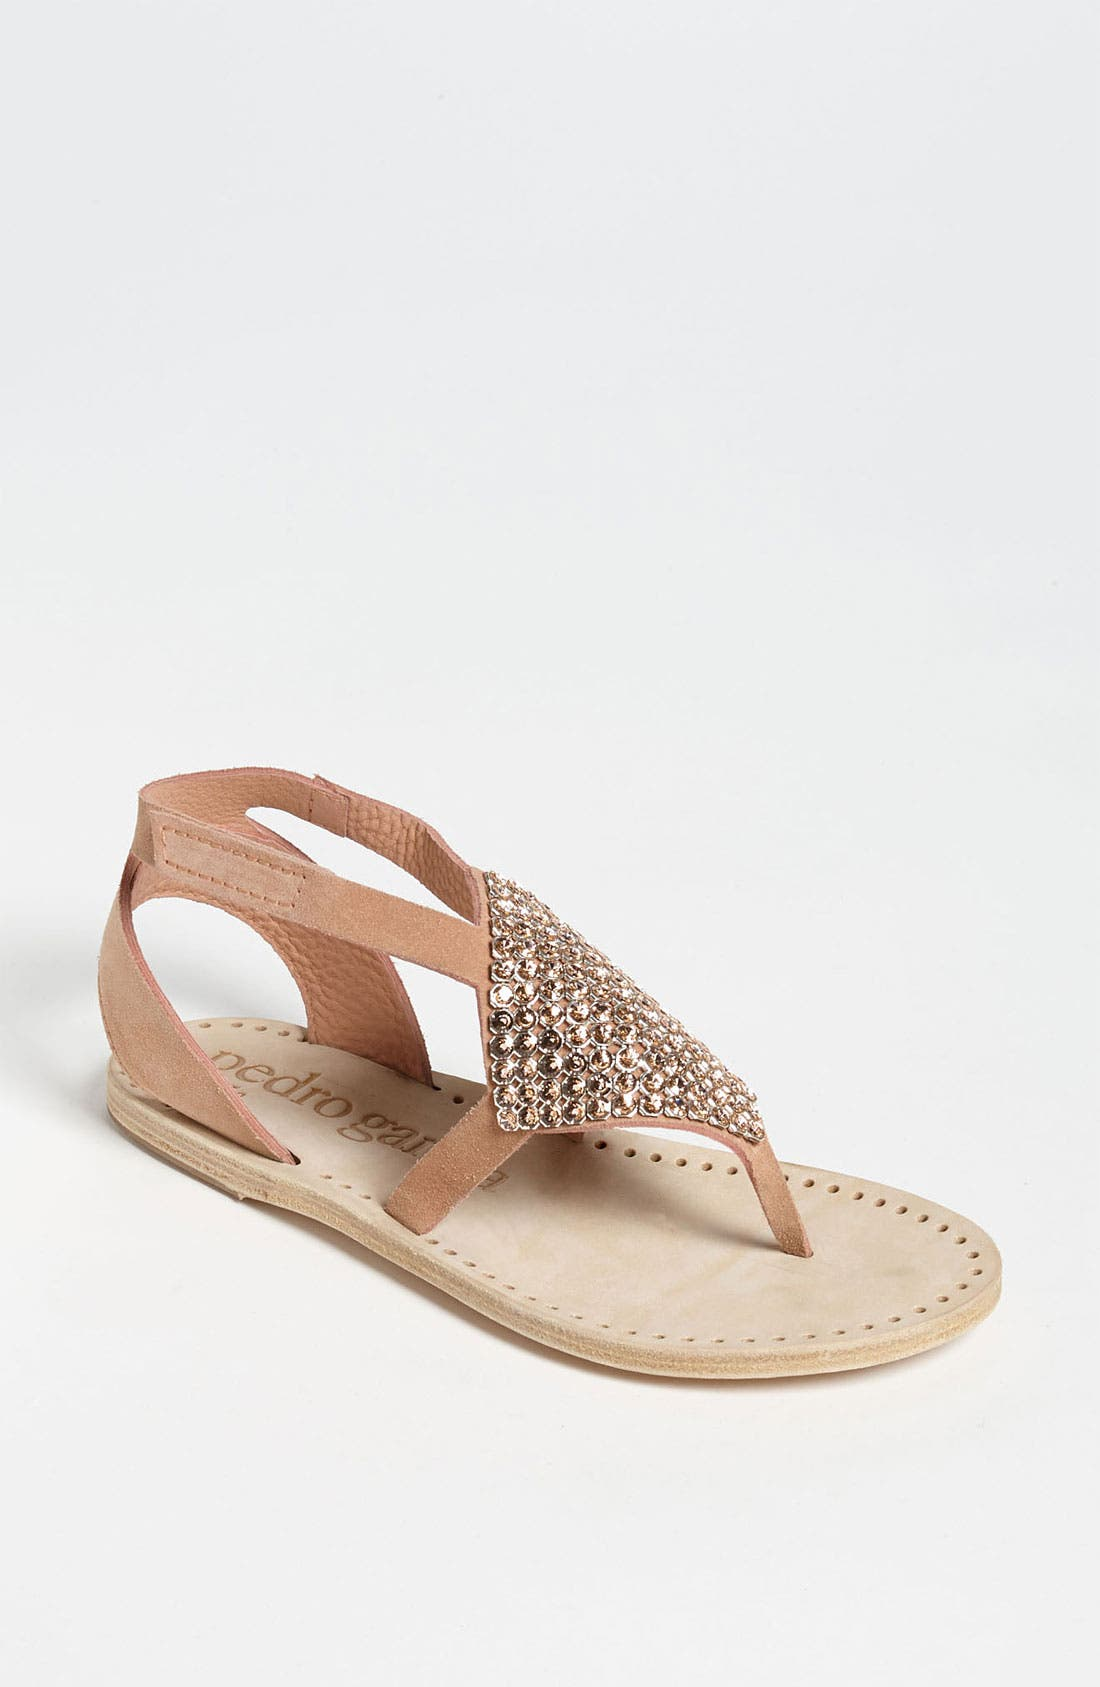 Alternate Image 1 Selected - Pedro Garcia 'Ivana' Sandal